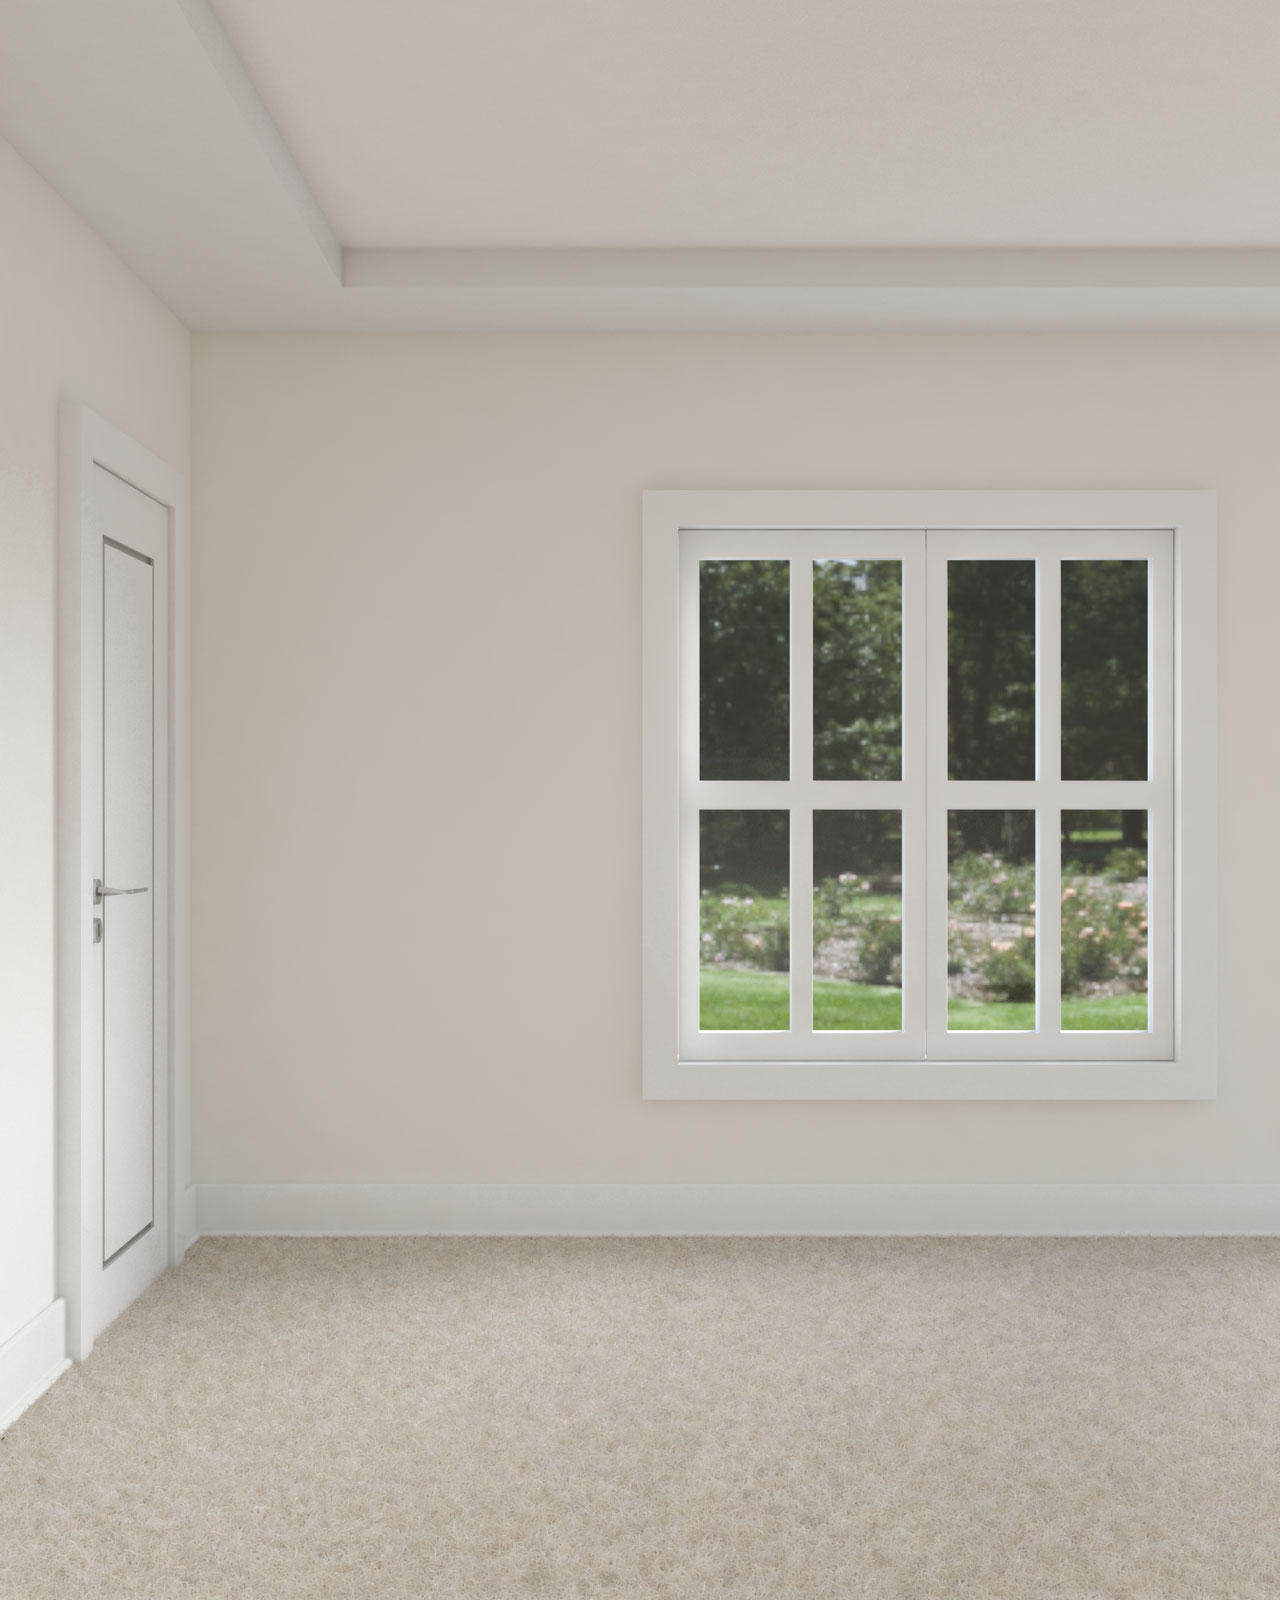 Room with white dove walls and ceiling